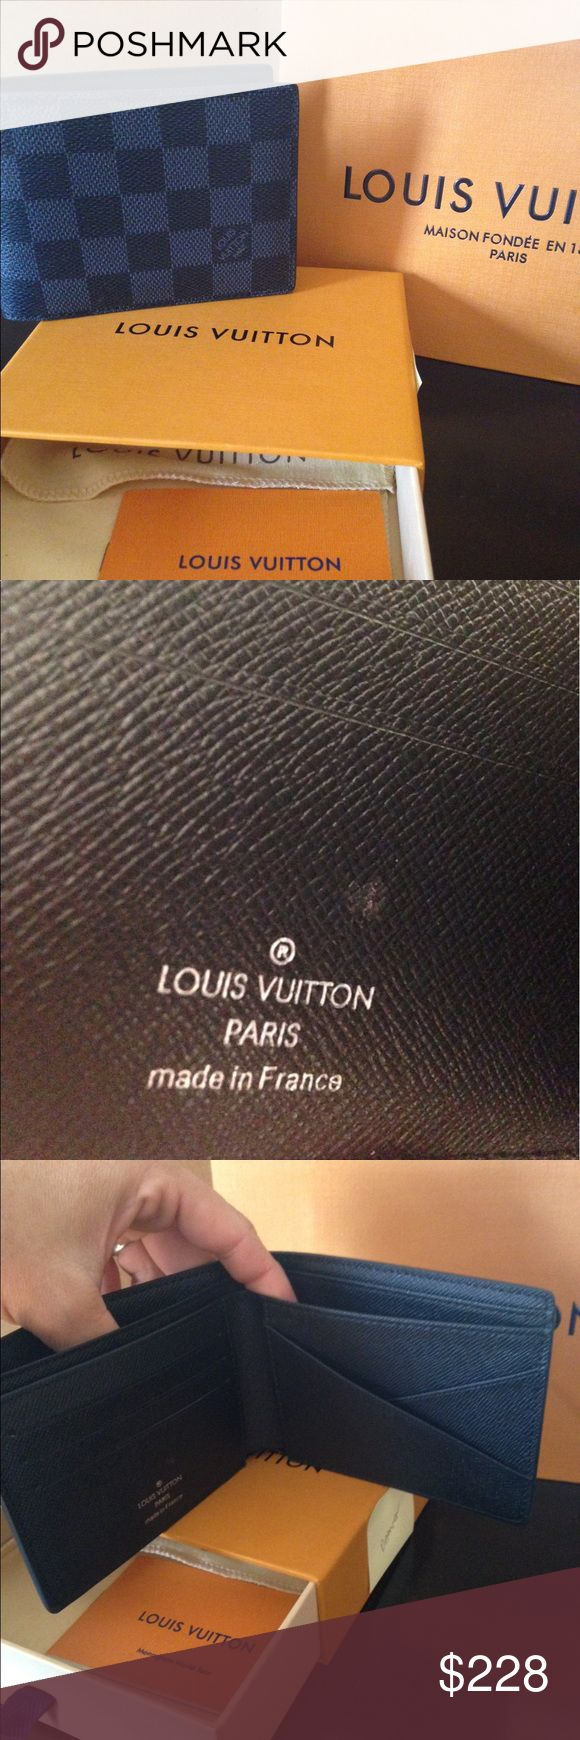 Louis Vuitton men's wallet New from the LV store with box and and bags Louis Vuitton Accessories Key & Card Holders